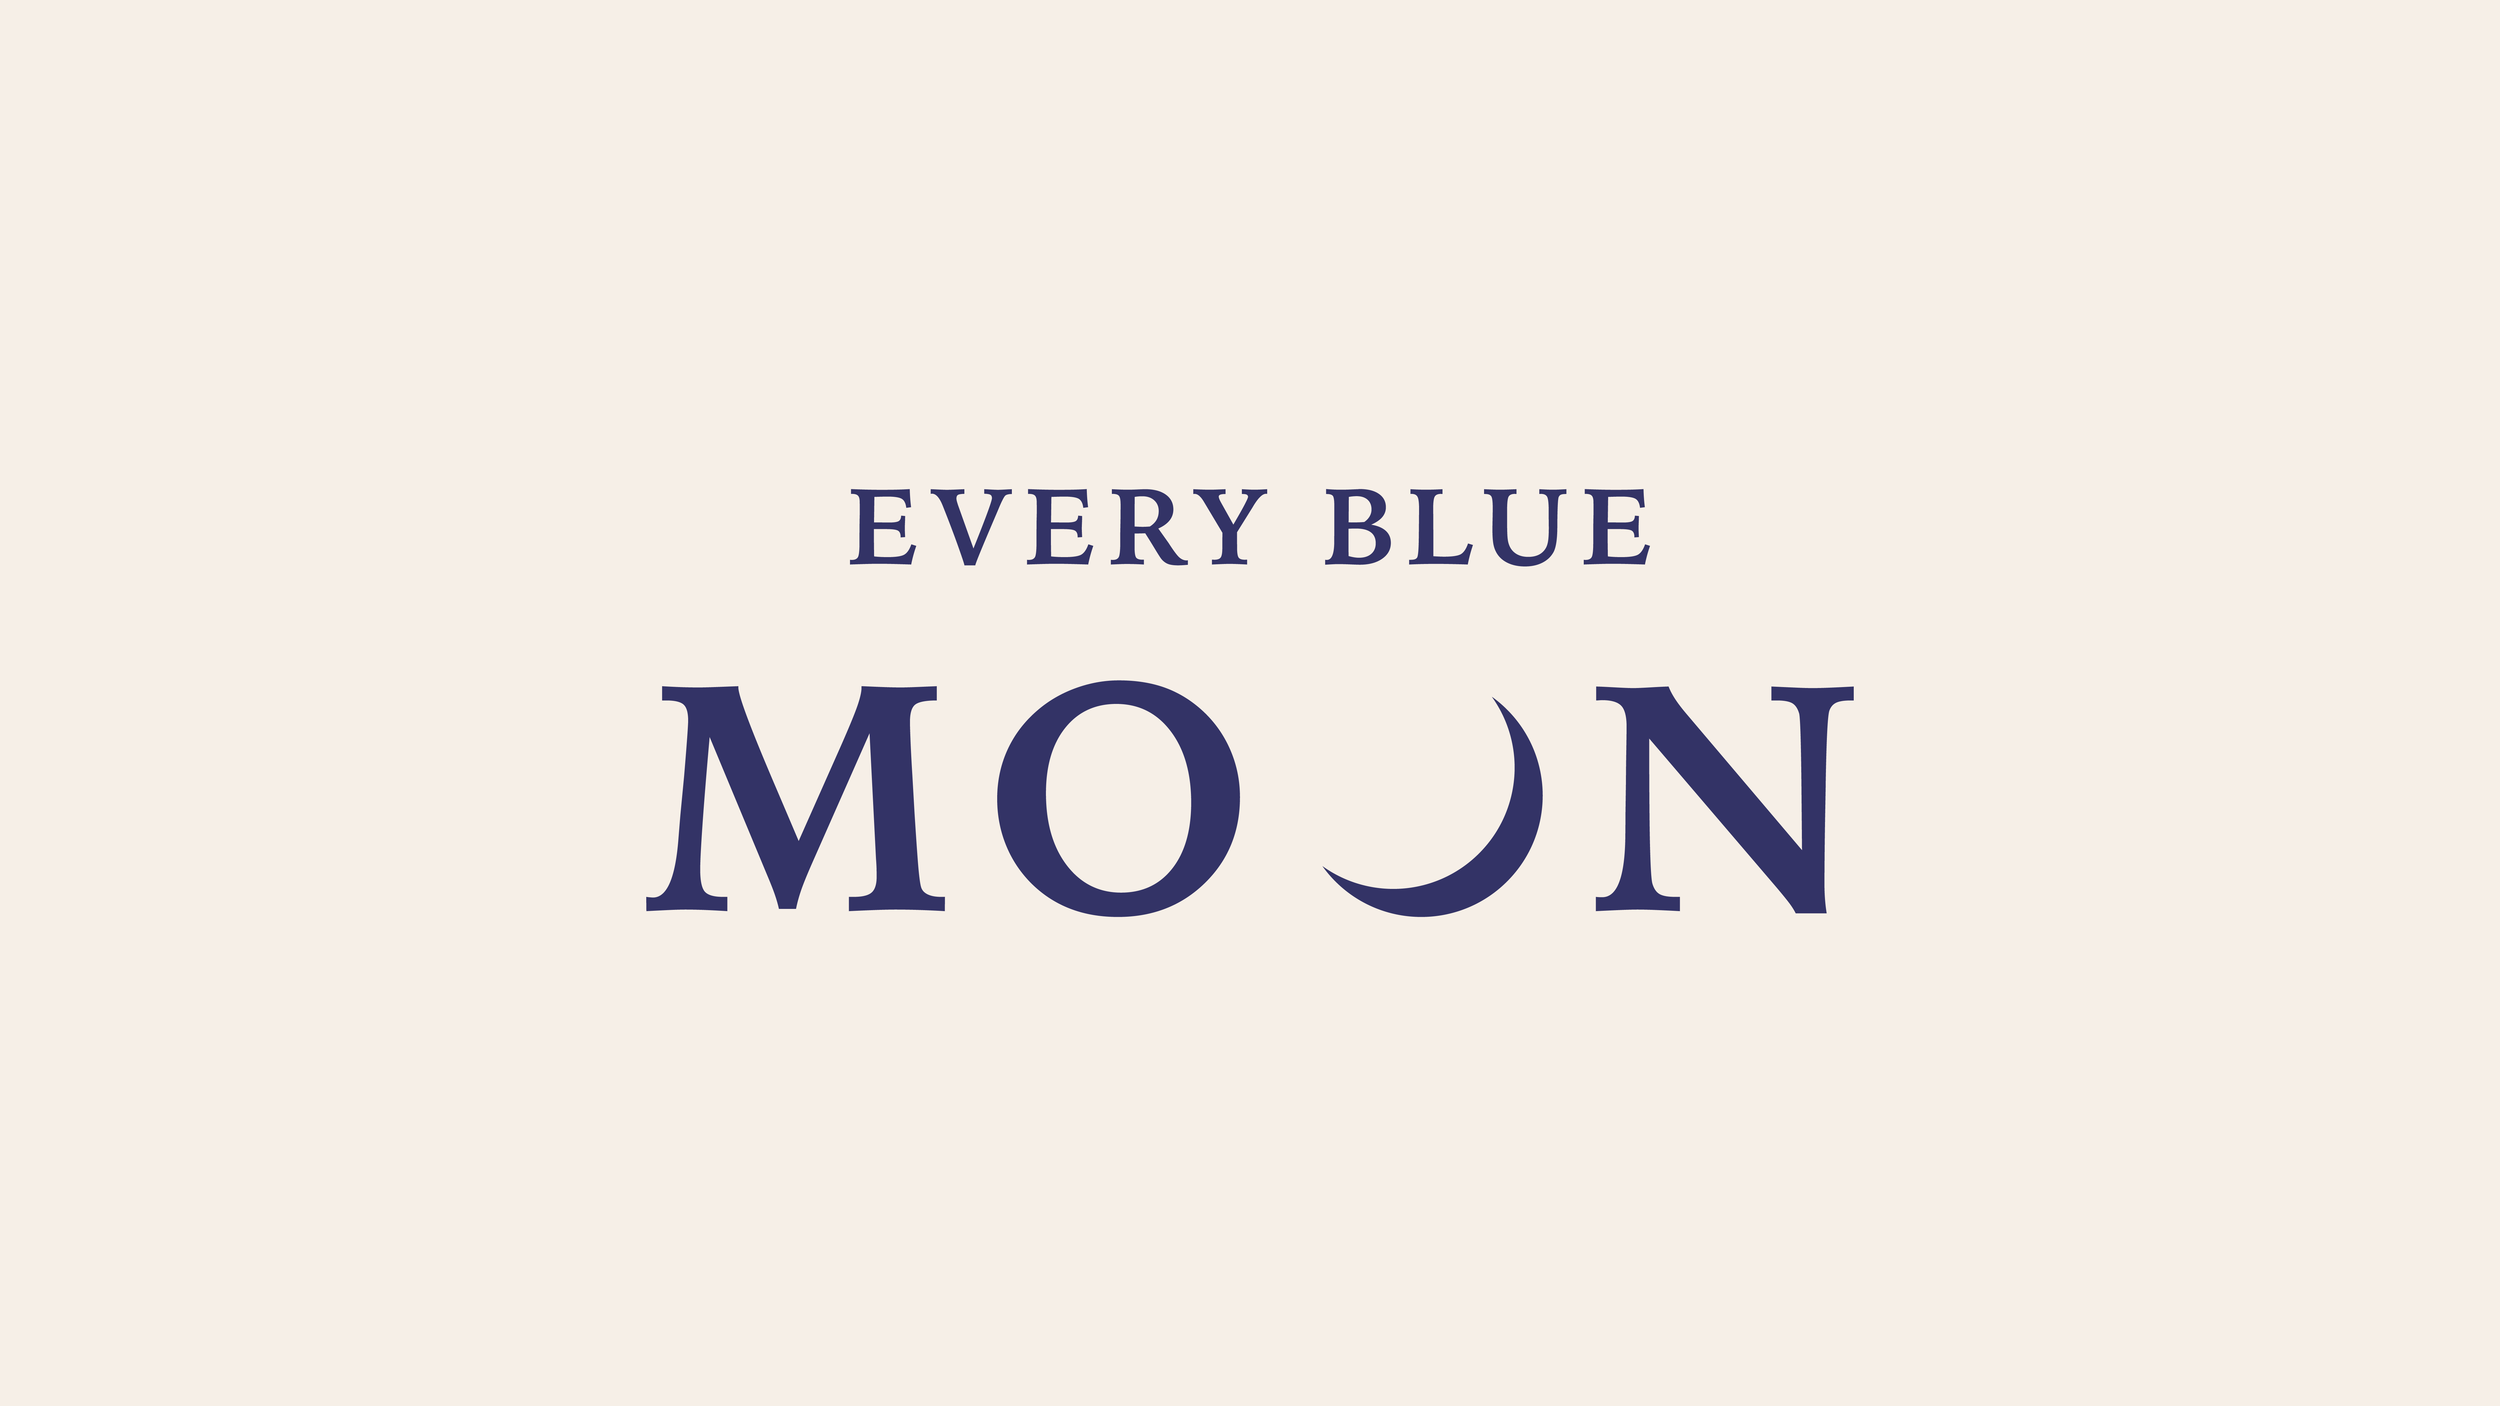 UNUSED primary, alternate, and wordmark logos for hip hop artist Wale's management company and record label Every Blue Moon. The designs include a full blue moon & crescent moon as the second O in moon, along with a color palette supplied by EBM.